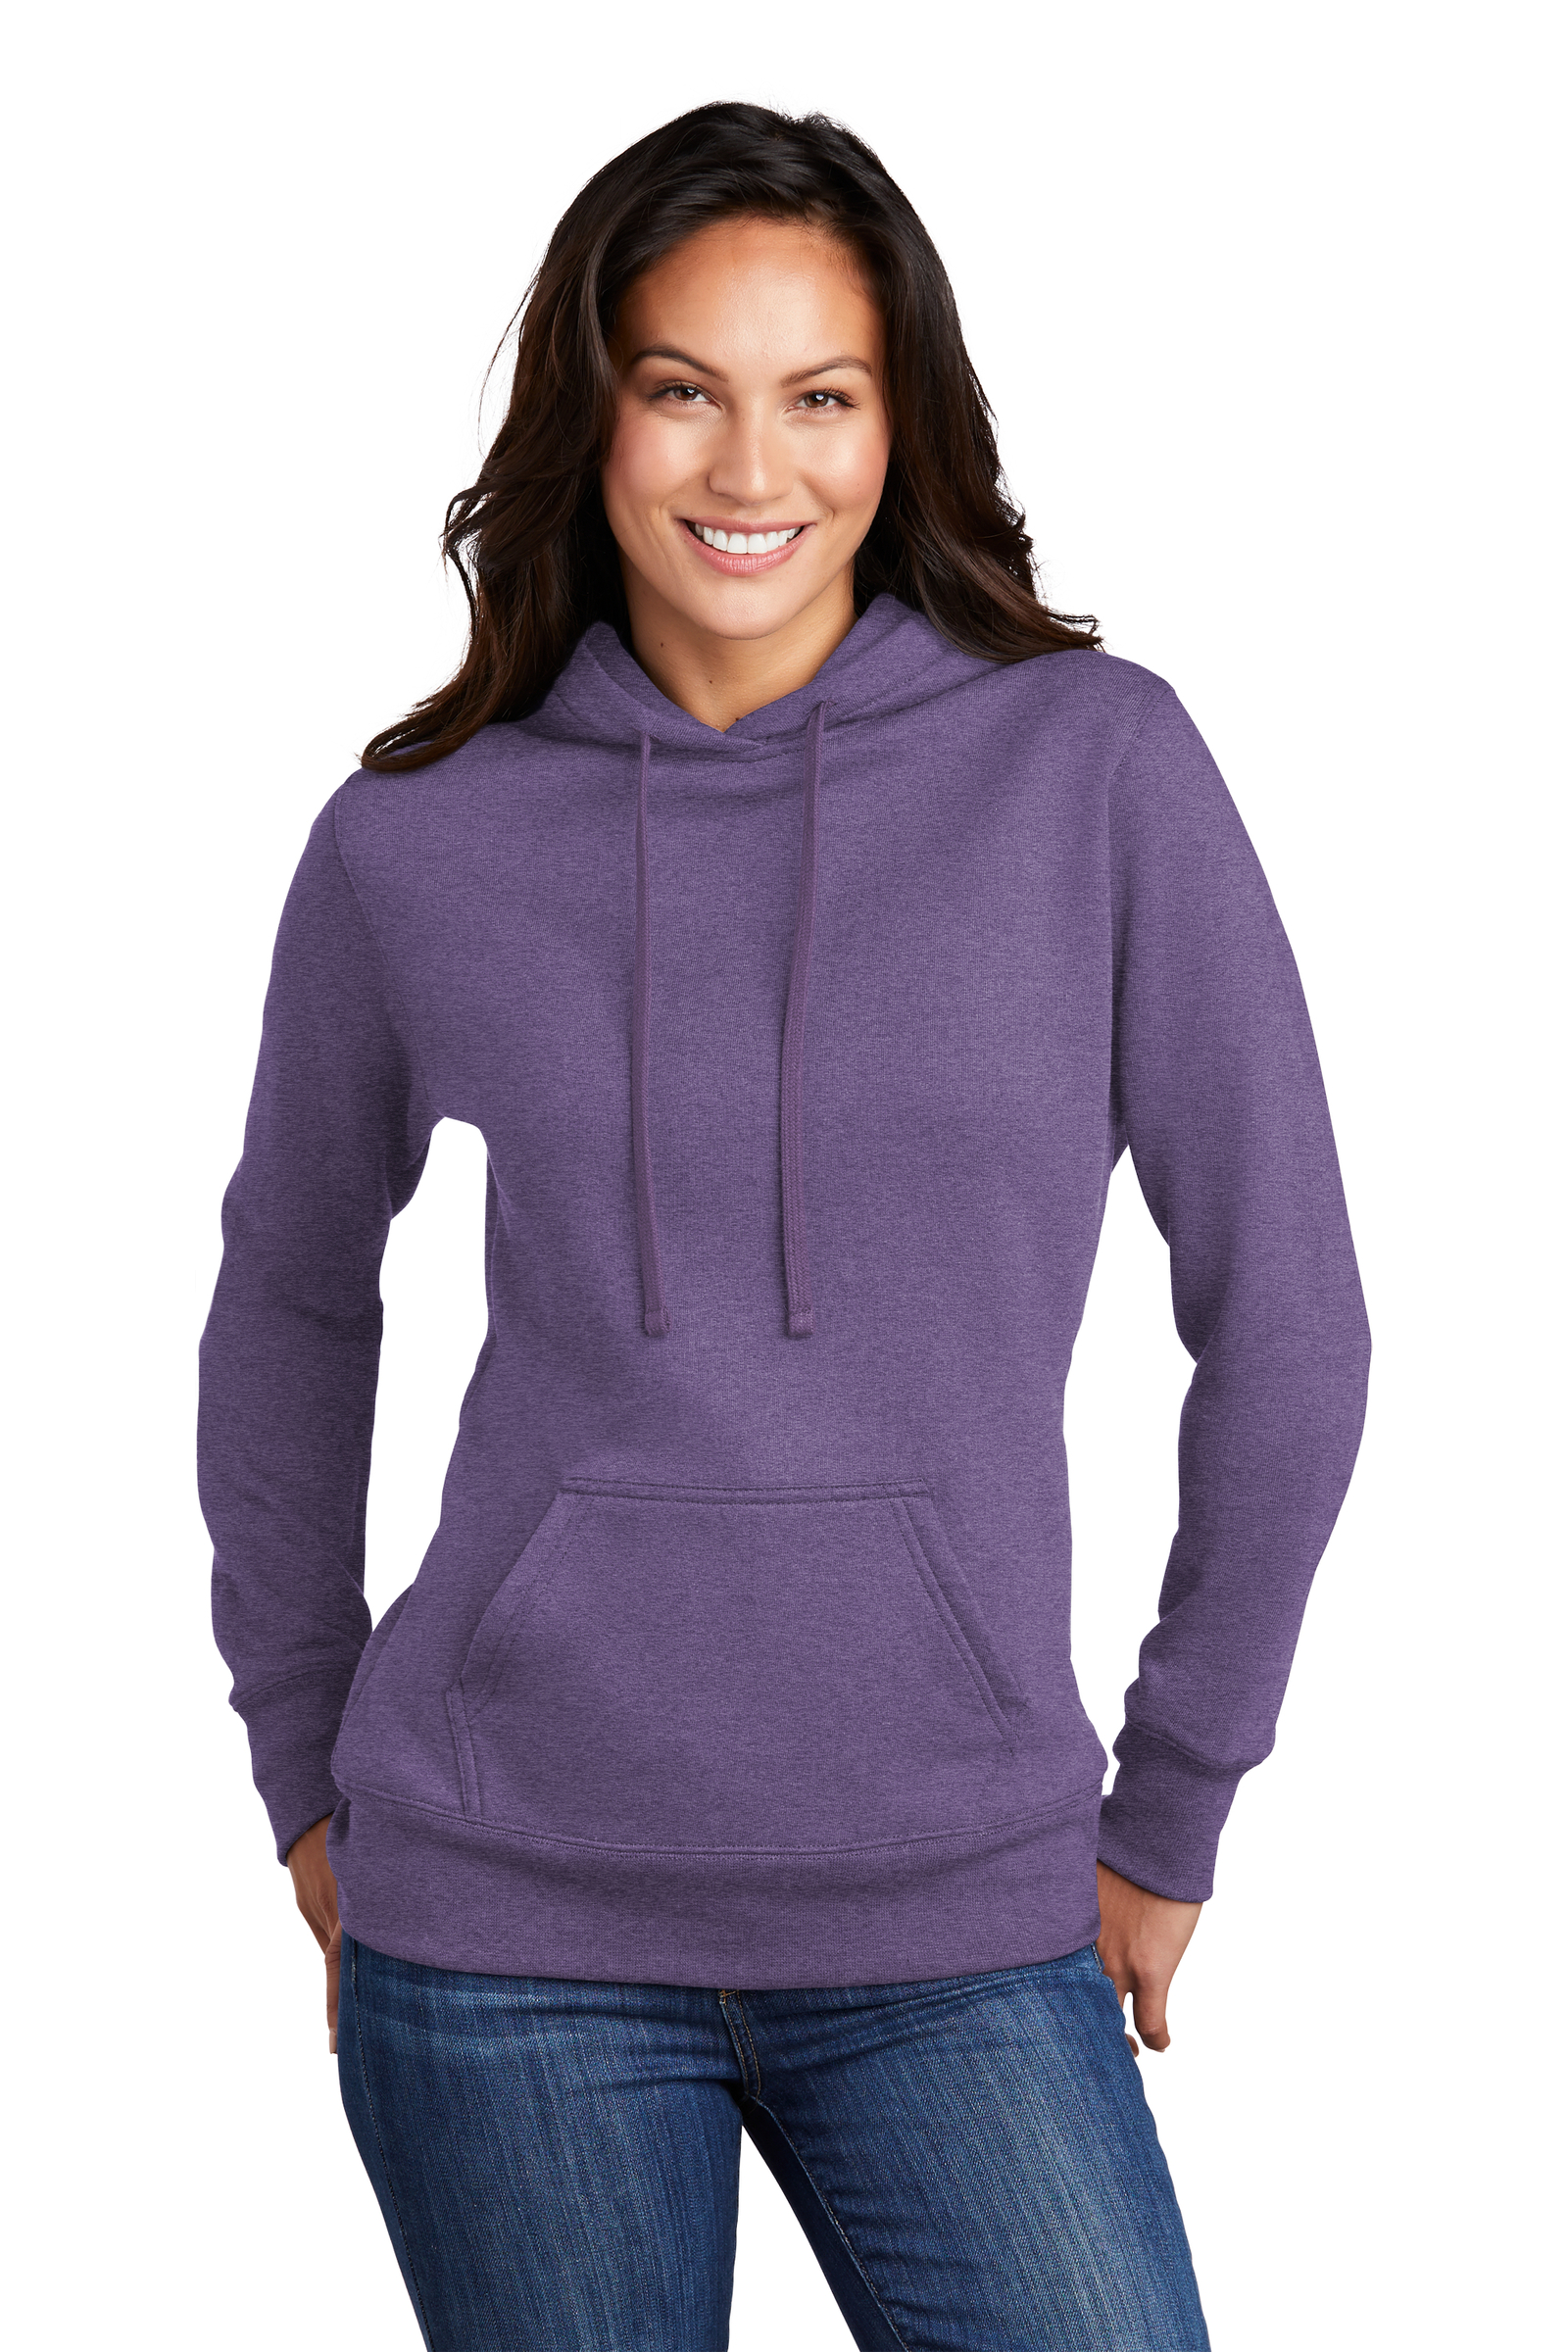 Port & Company Embroidered Women's Core Fleece Pullover Hooded Sweatshirt